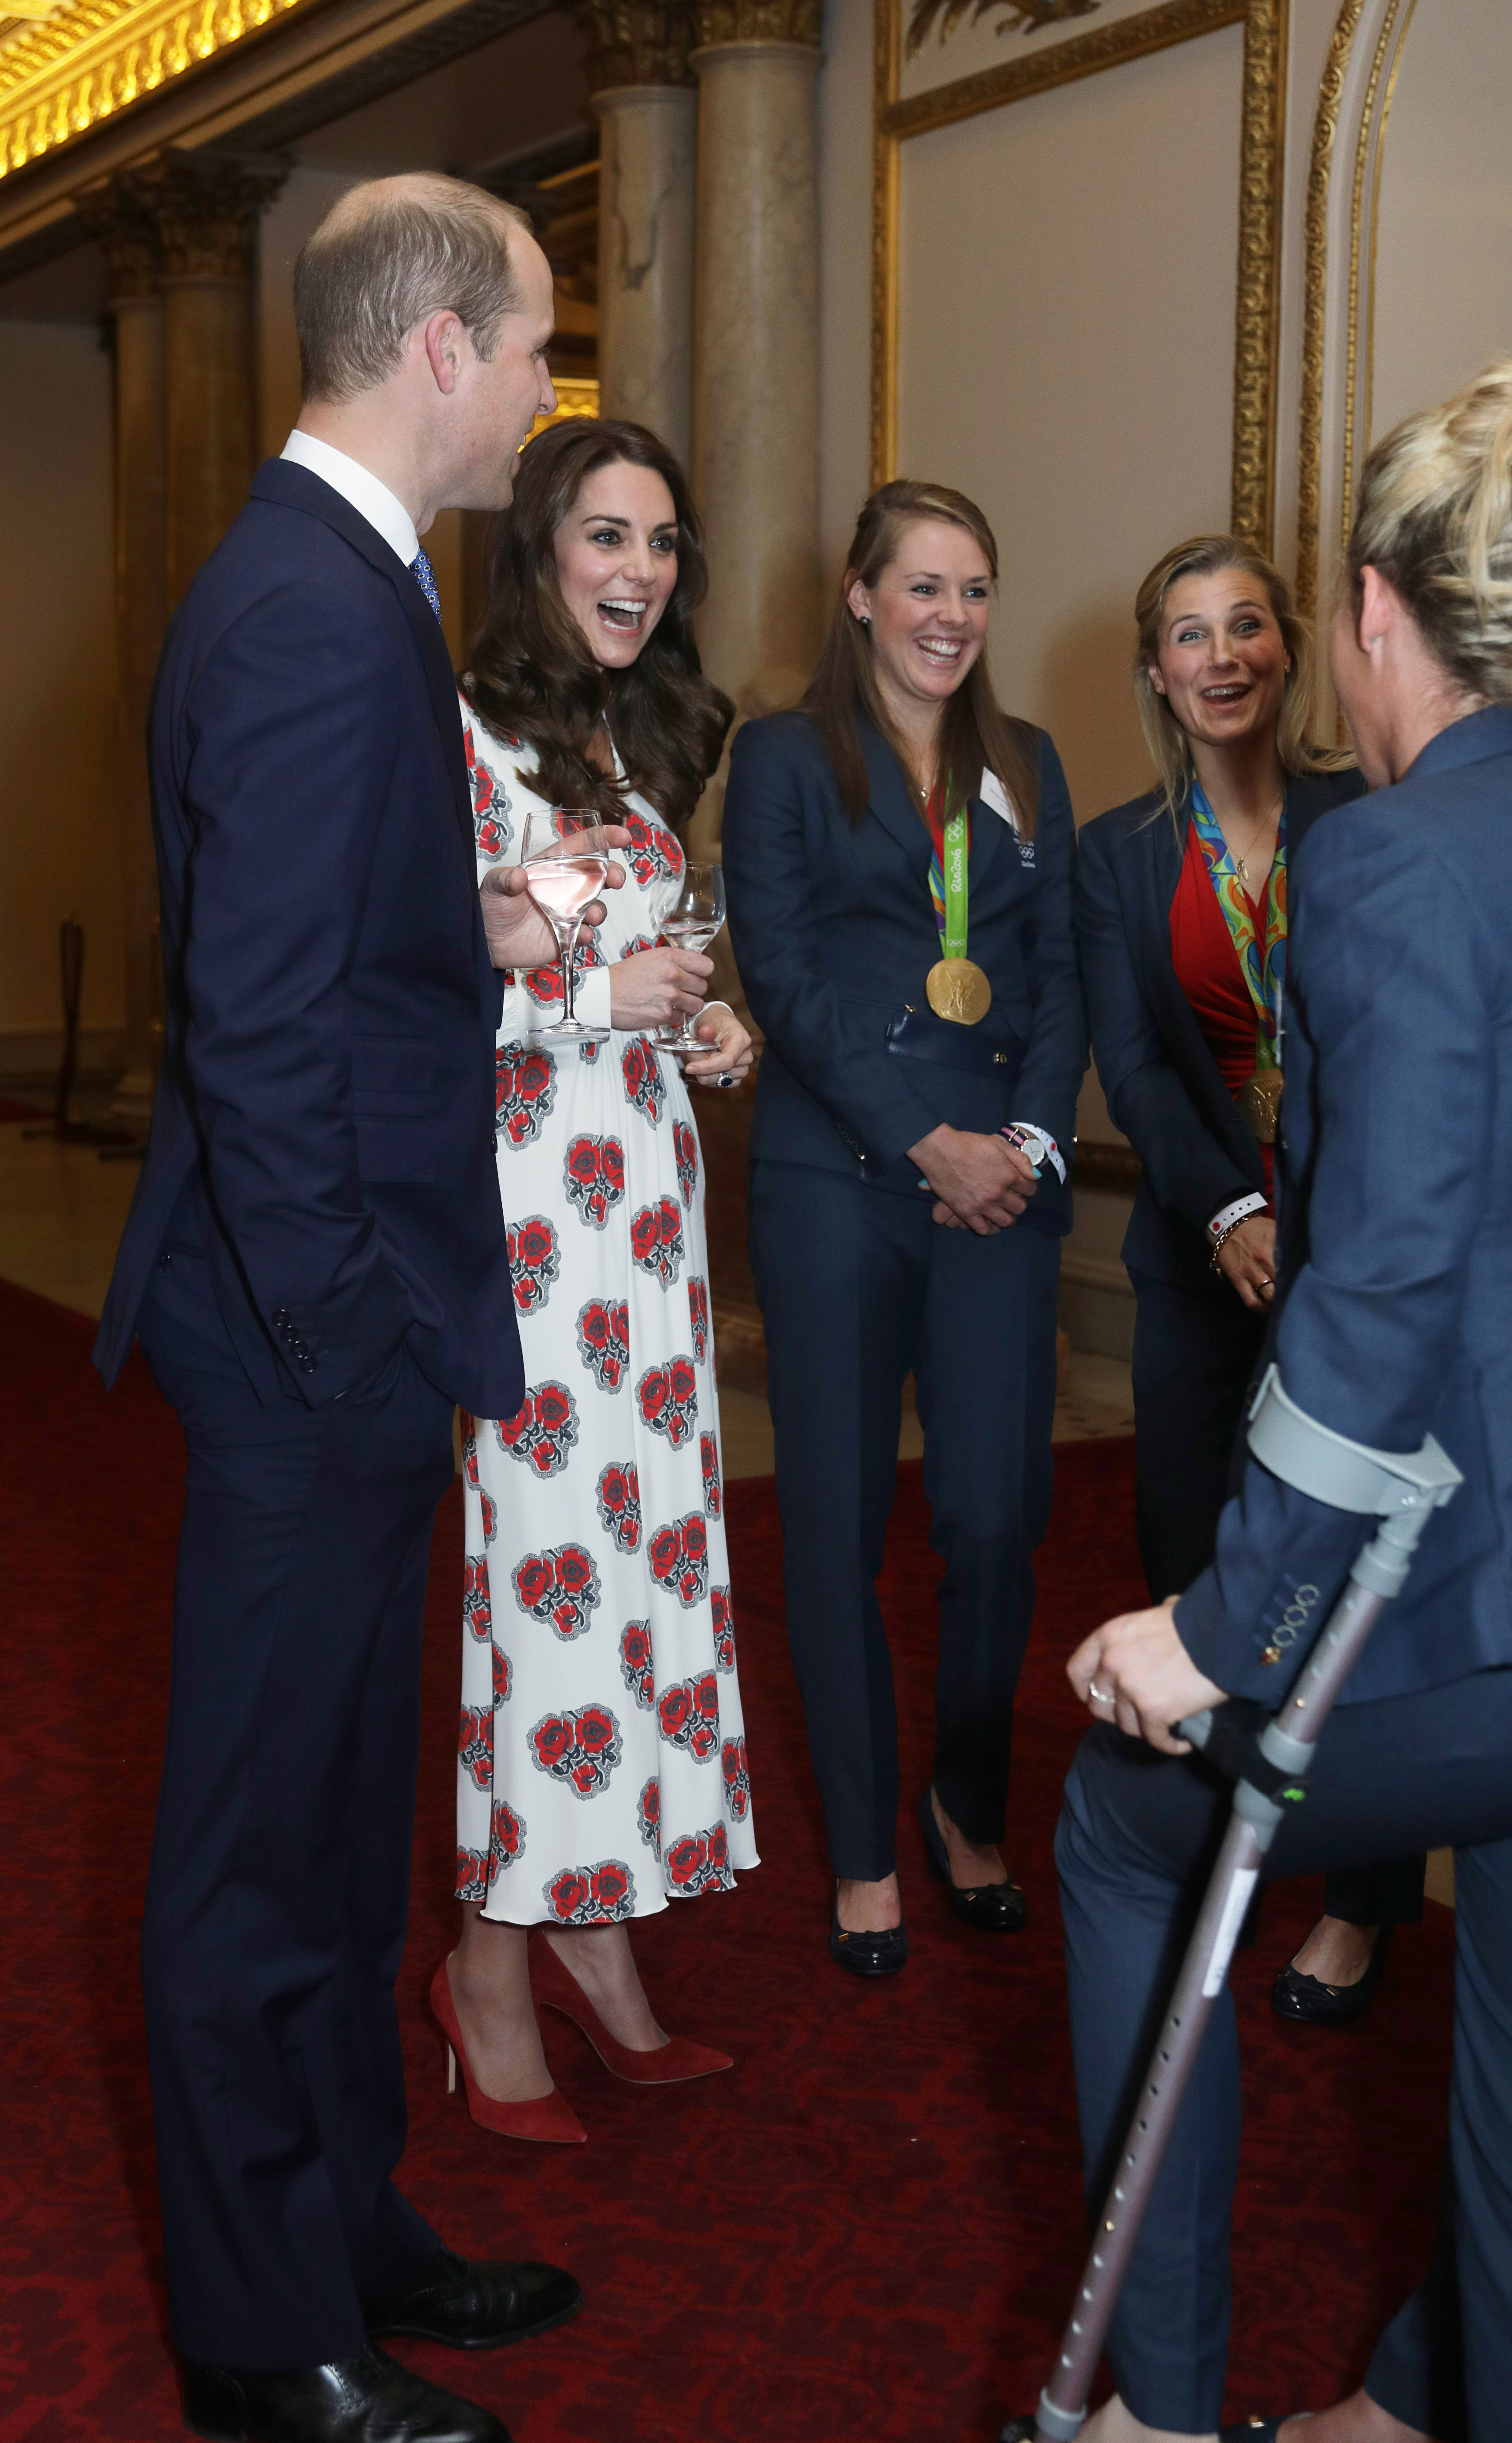 Prince William, Duke of Cambridge and Catherine, Duchess of Cambridge meet athletes at a reception for Team GB's 2016 Olympic and Paralympic teams hosted by Queen Elizabeth II at Buckingham Palace in London, England, on Oct. 18, 2016.